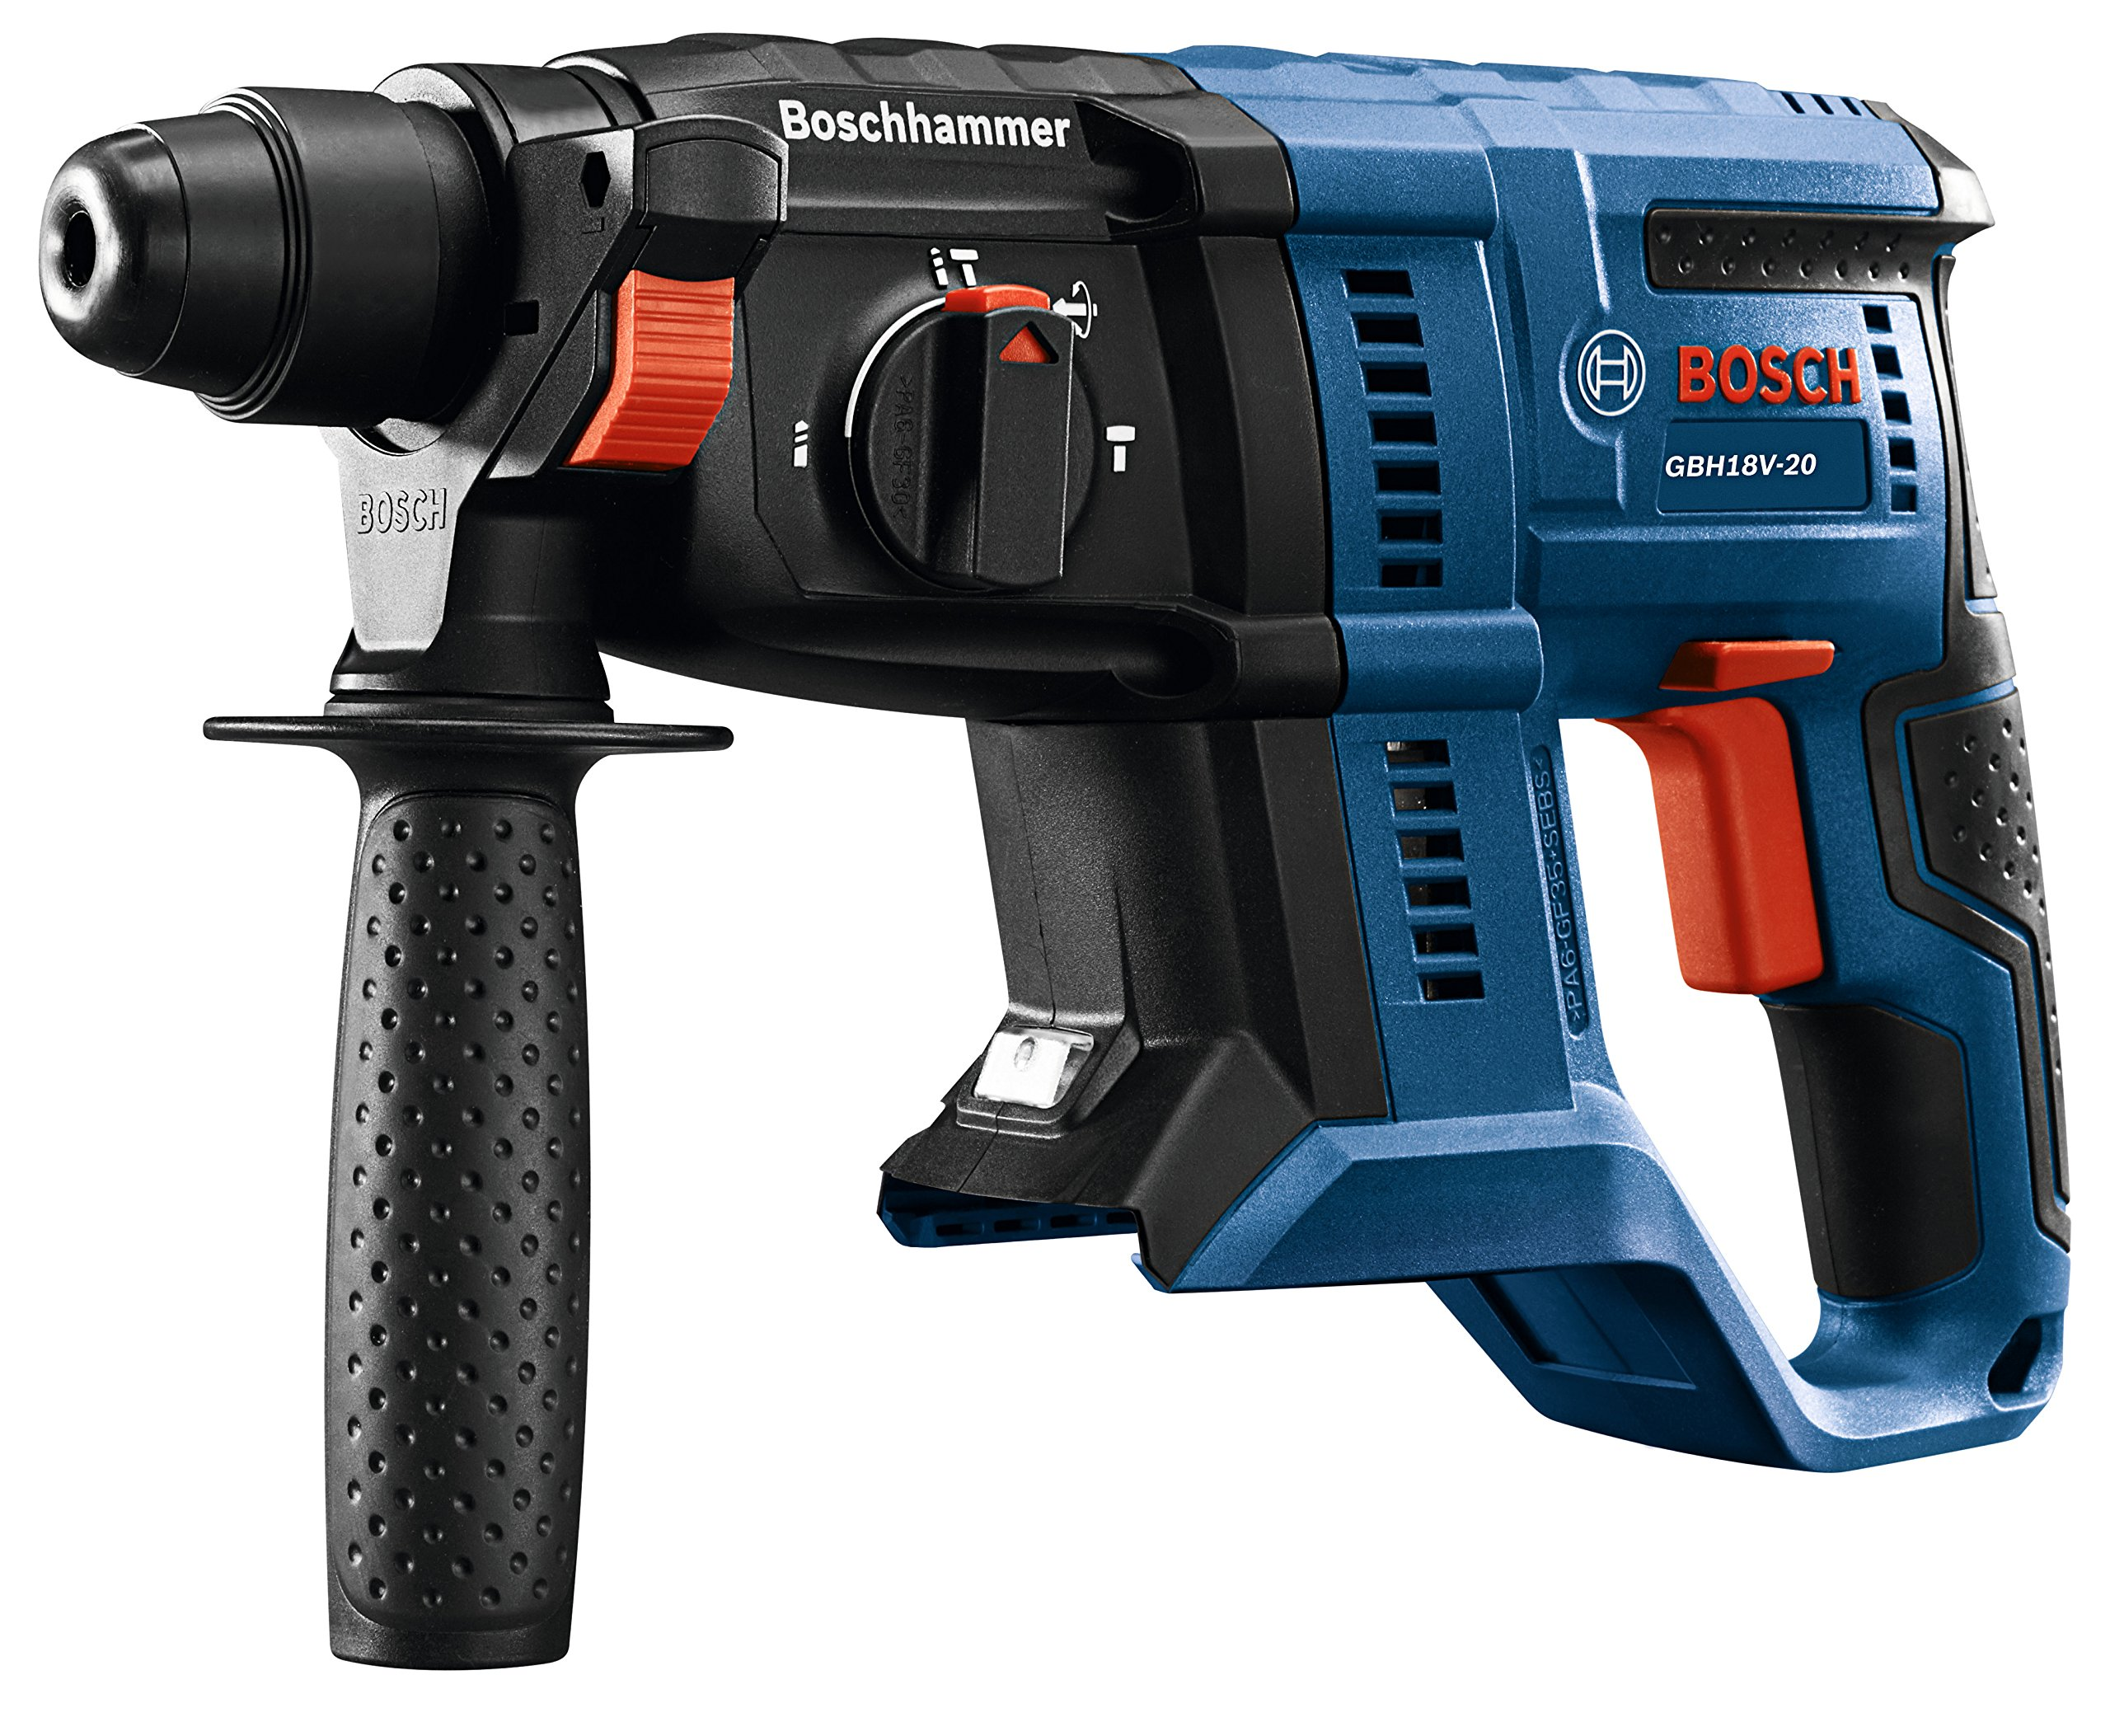 Bosch GBH18V-20N 18V 3/4 in. SDS-plus Rotary Hammer (Bare Tool) by Bosch (Image #6)